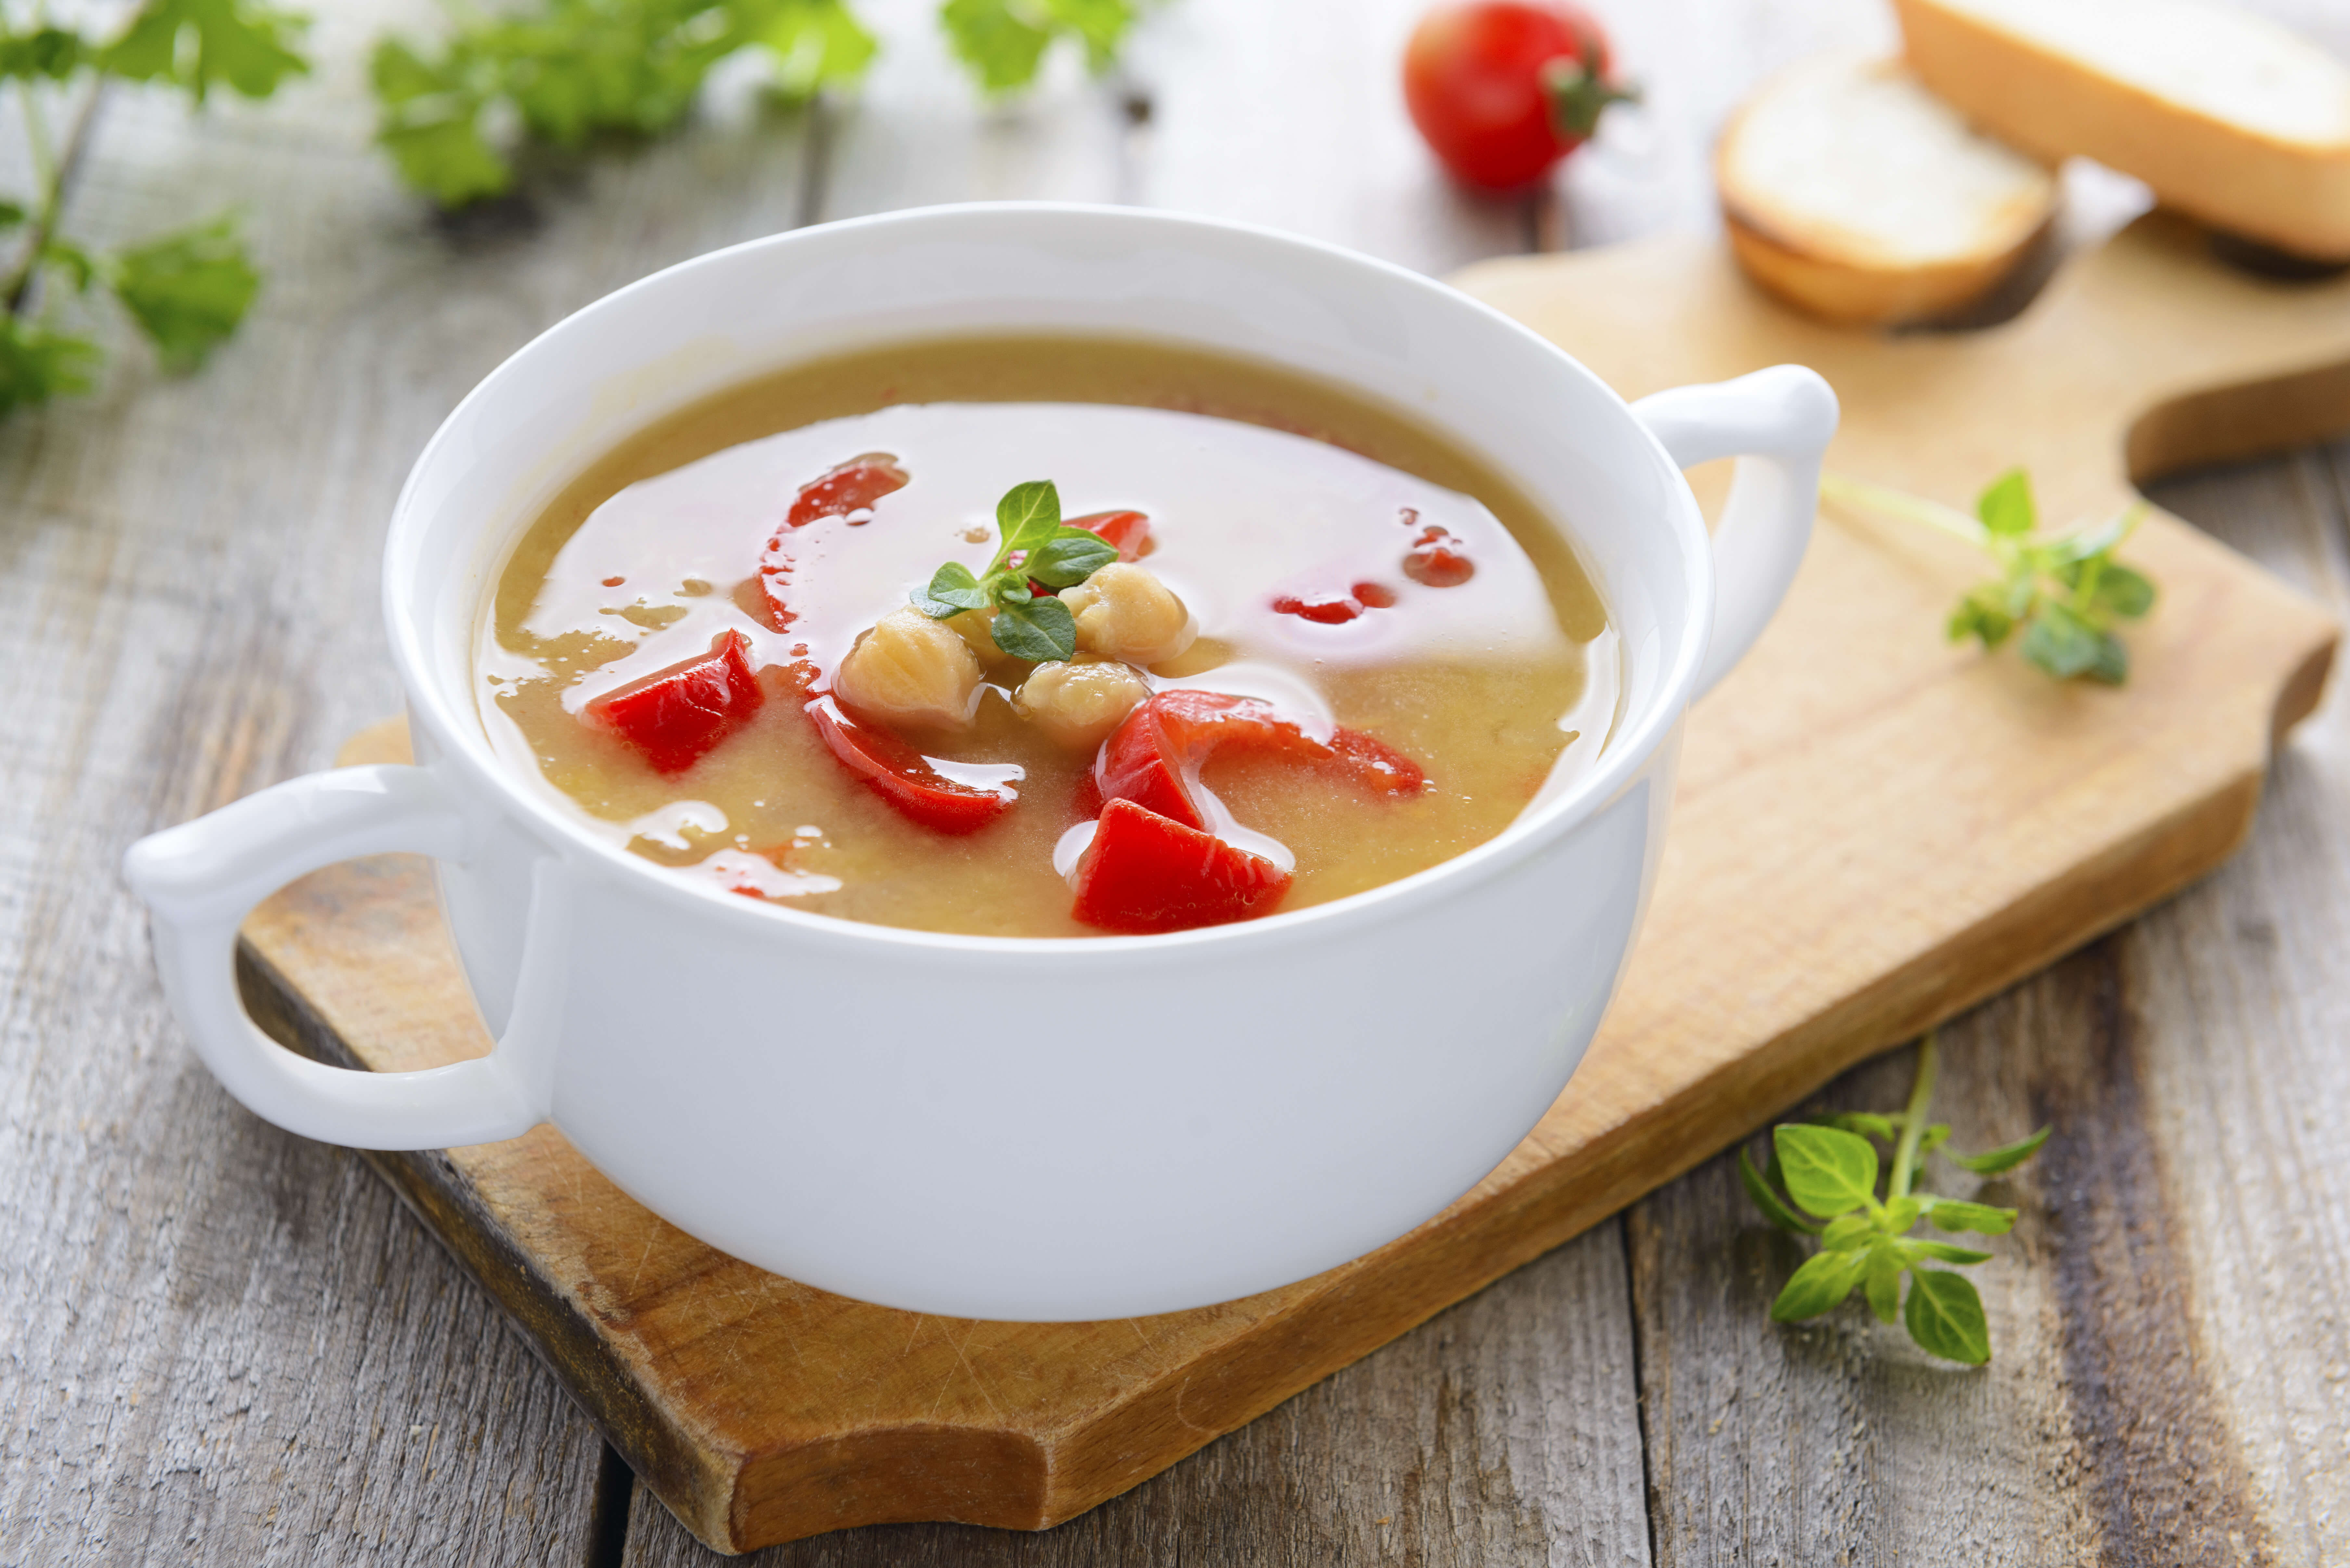 Soups are a great way to go veggie while still maintaining flavor.